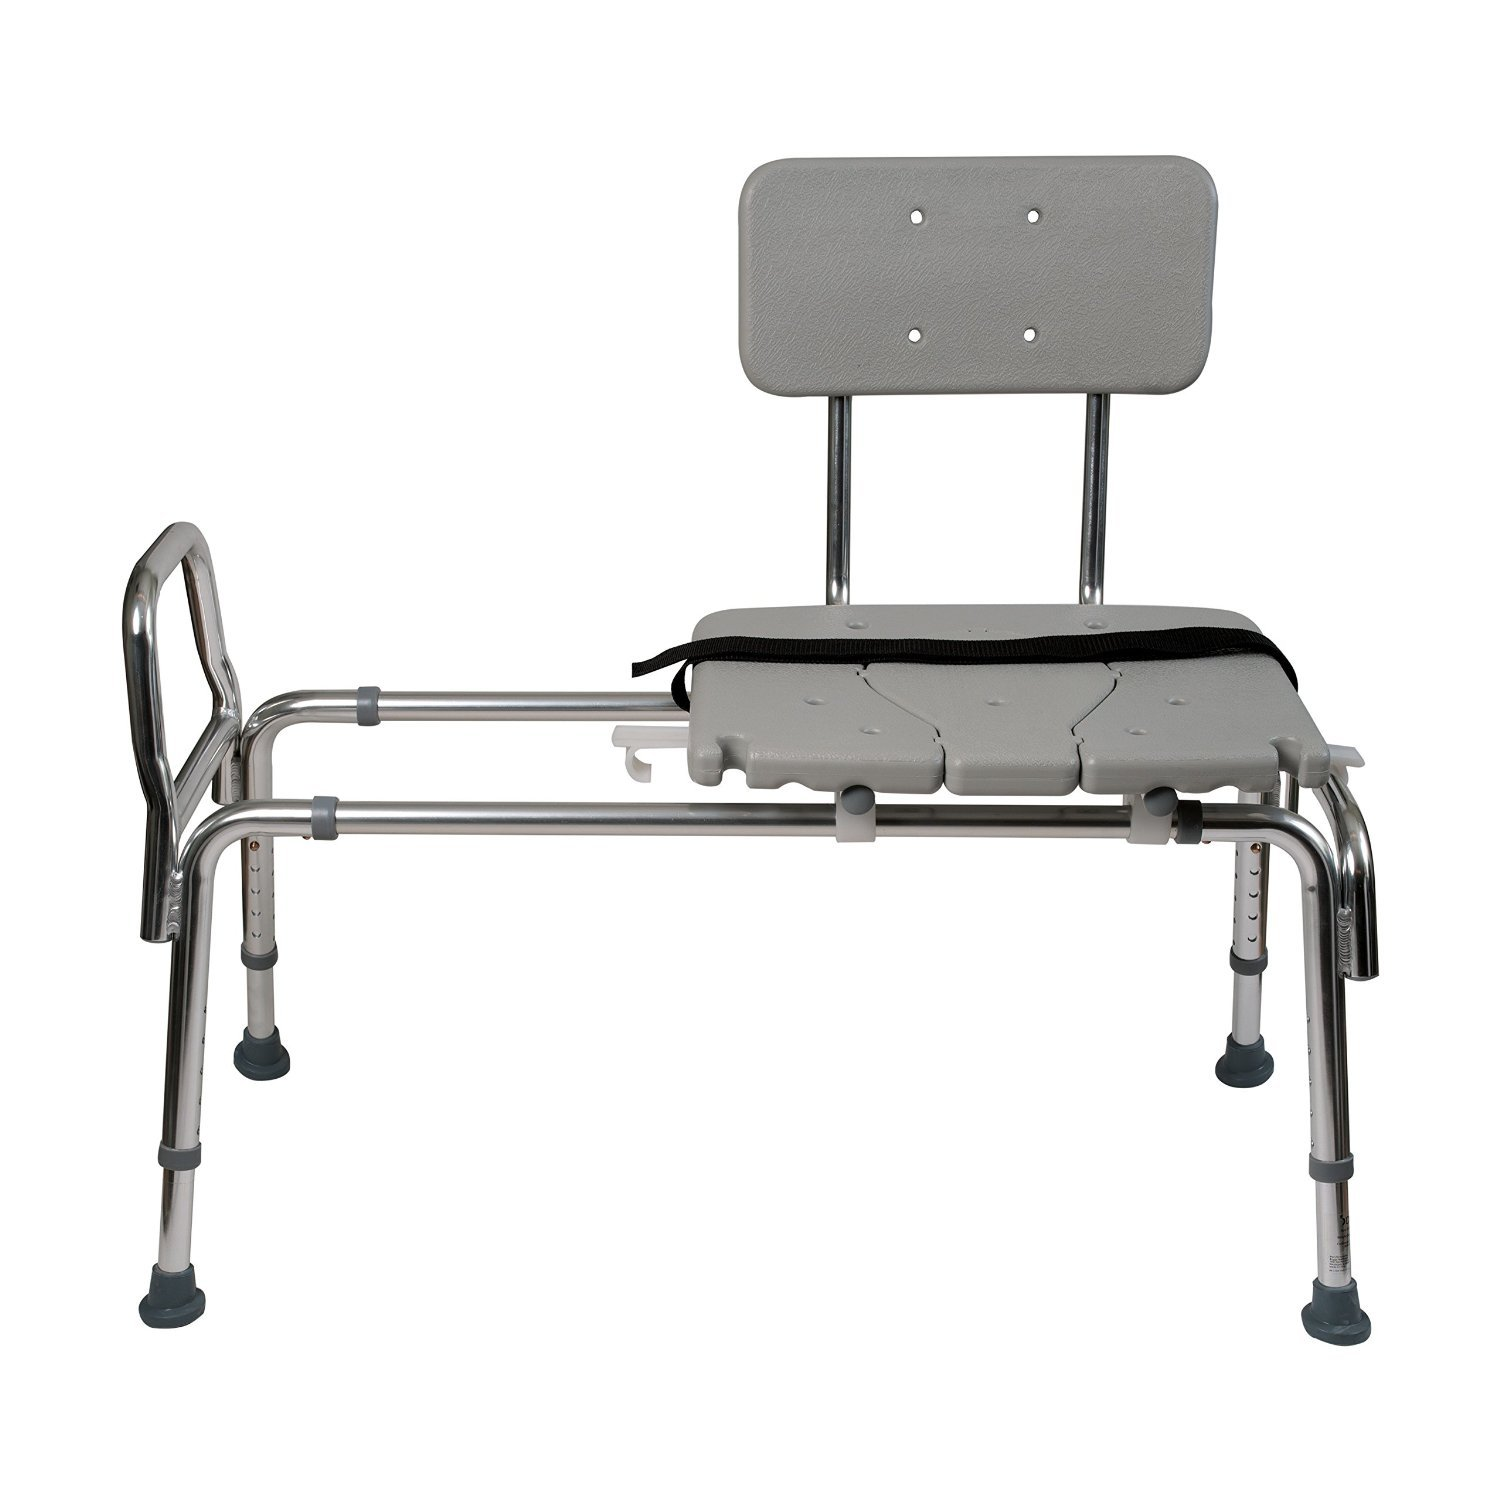 Shower Bench Transfer Seat Bath Tub Chair Safety Bench